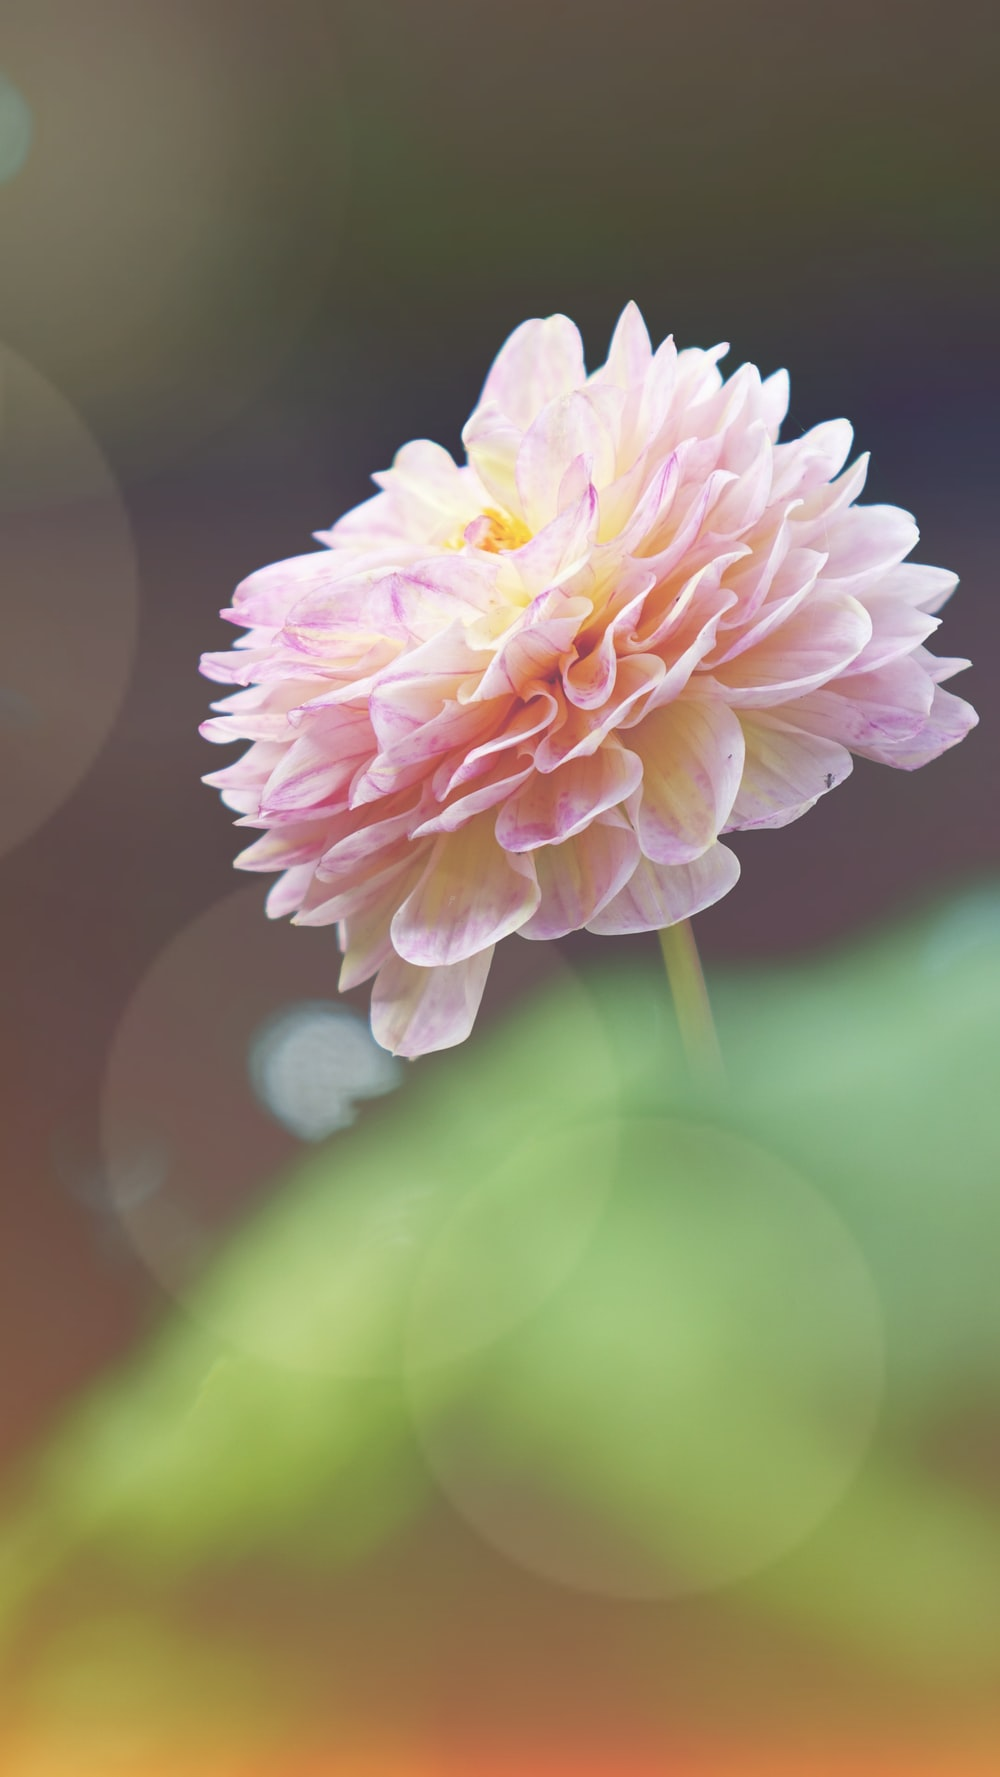 macrophotography of pink flower